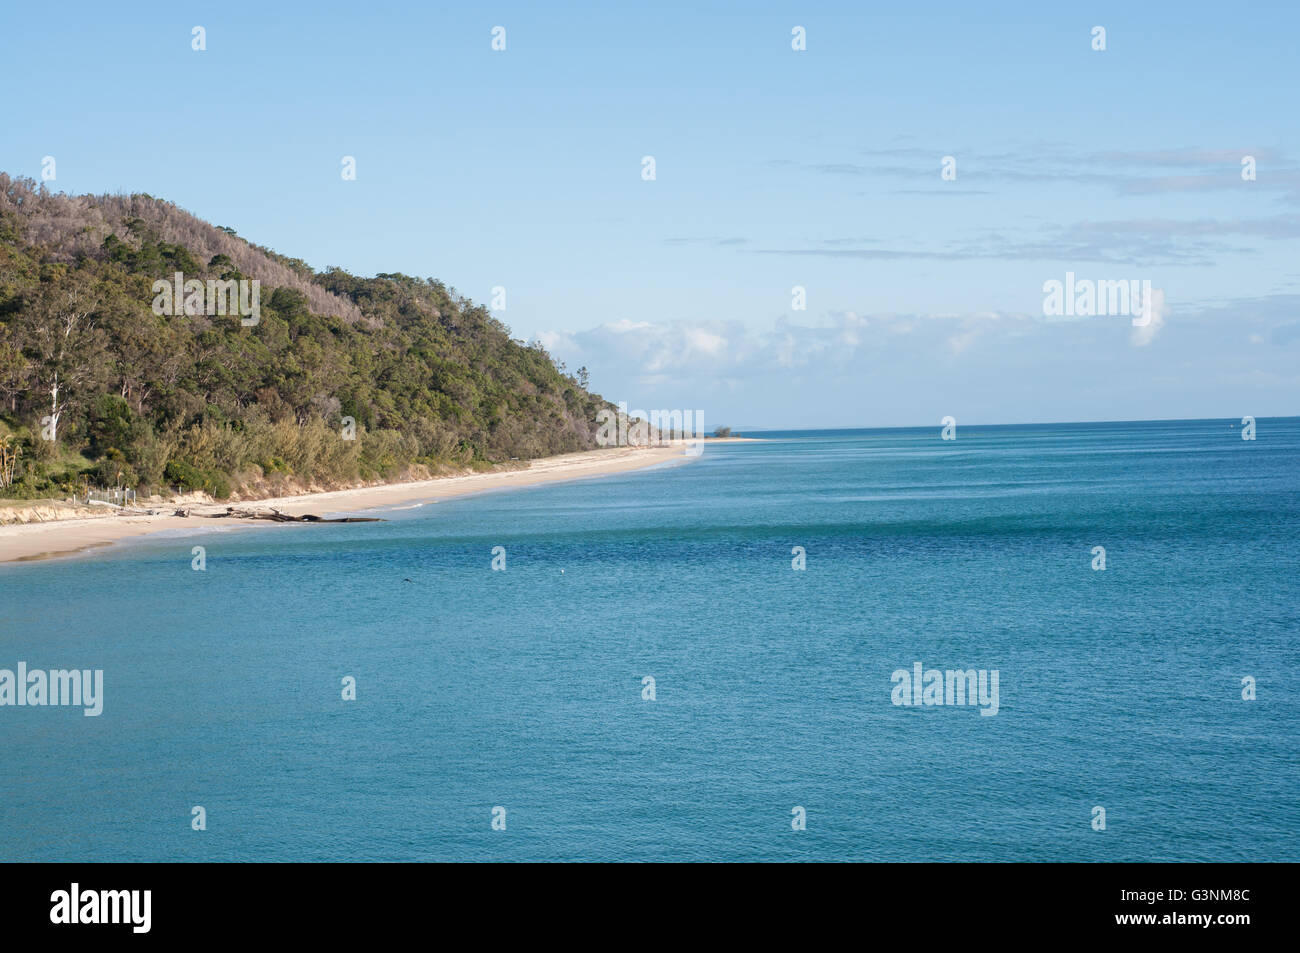 Coast of Tangalooma island resort in Queensland Australia with very blue ocean - Stock Image